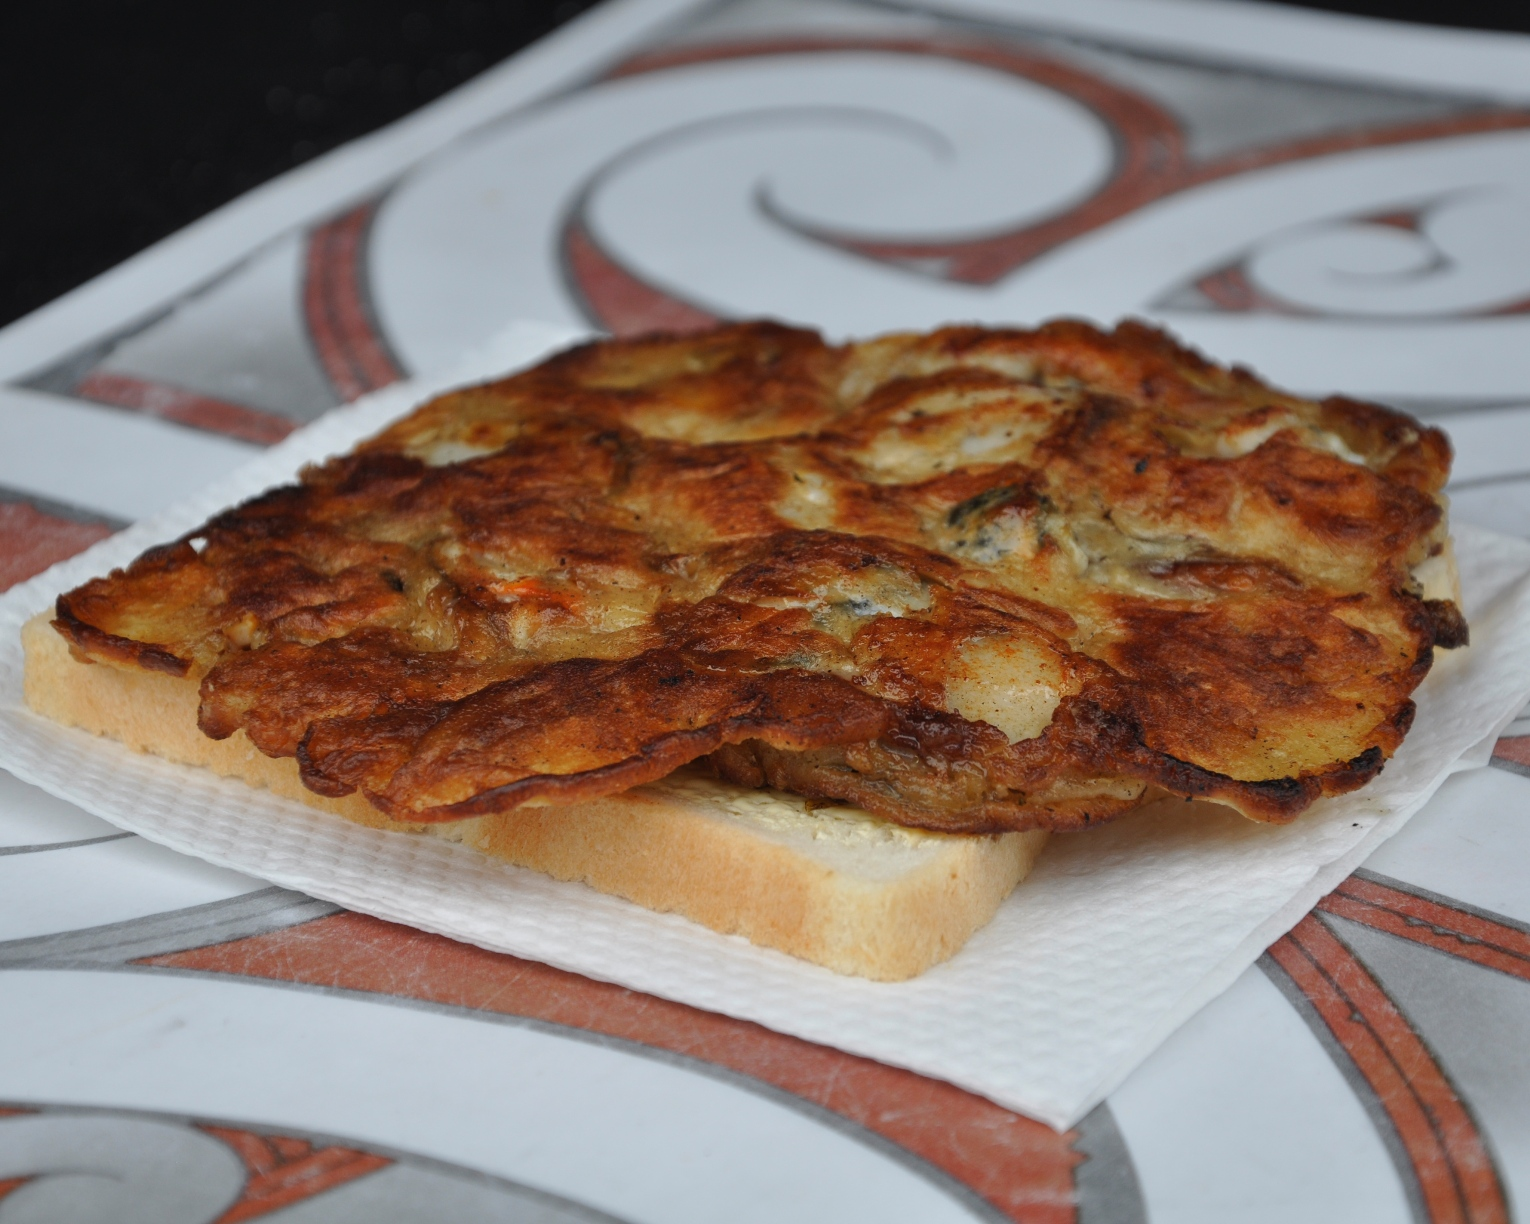 The Kiwi mussel fritter sandwich